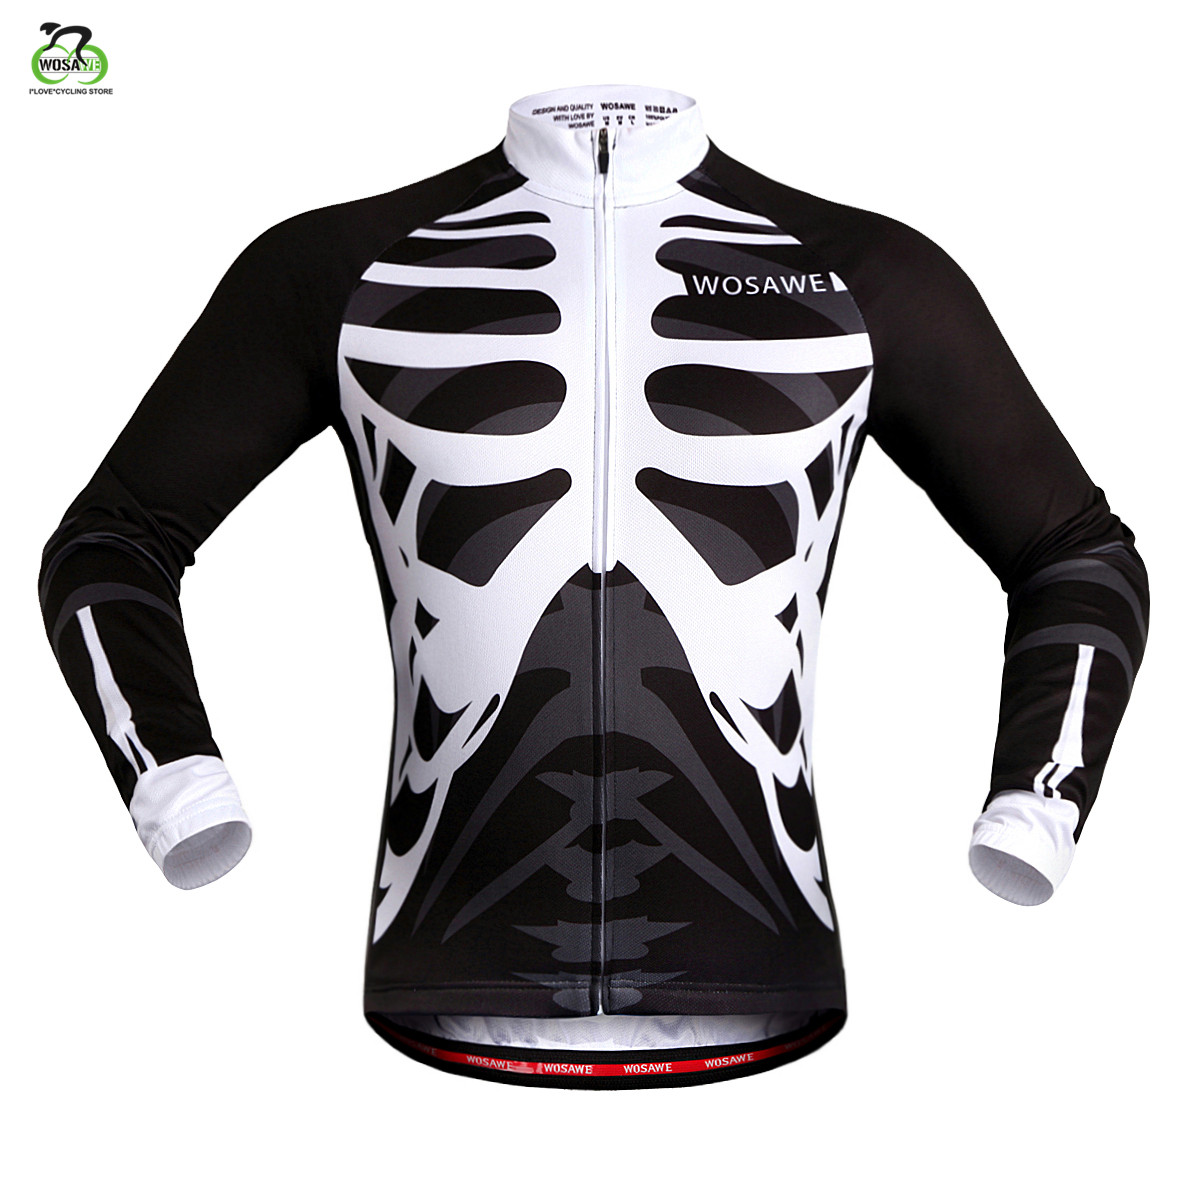 WOSAWE long sleeves Cycling Jersey 2019 Men MTB Downhill Jerseys Breathable Bike shirt Motocross Sports Cycling Clothing Jersey